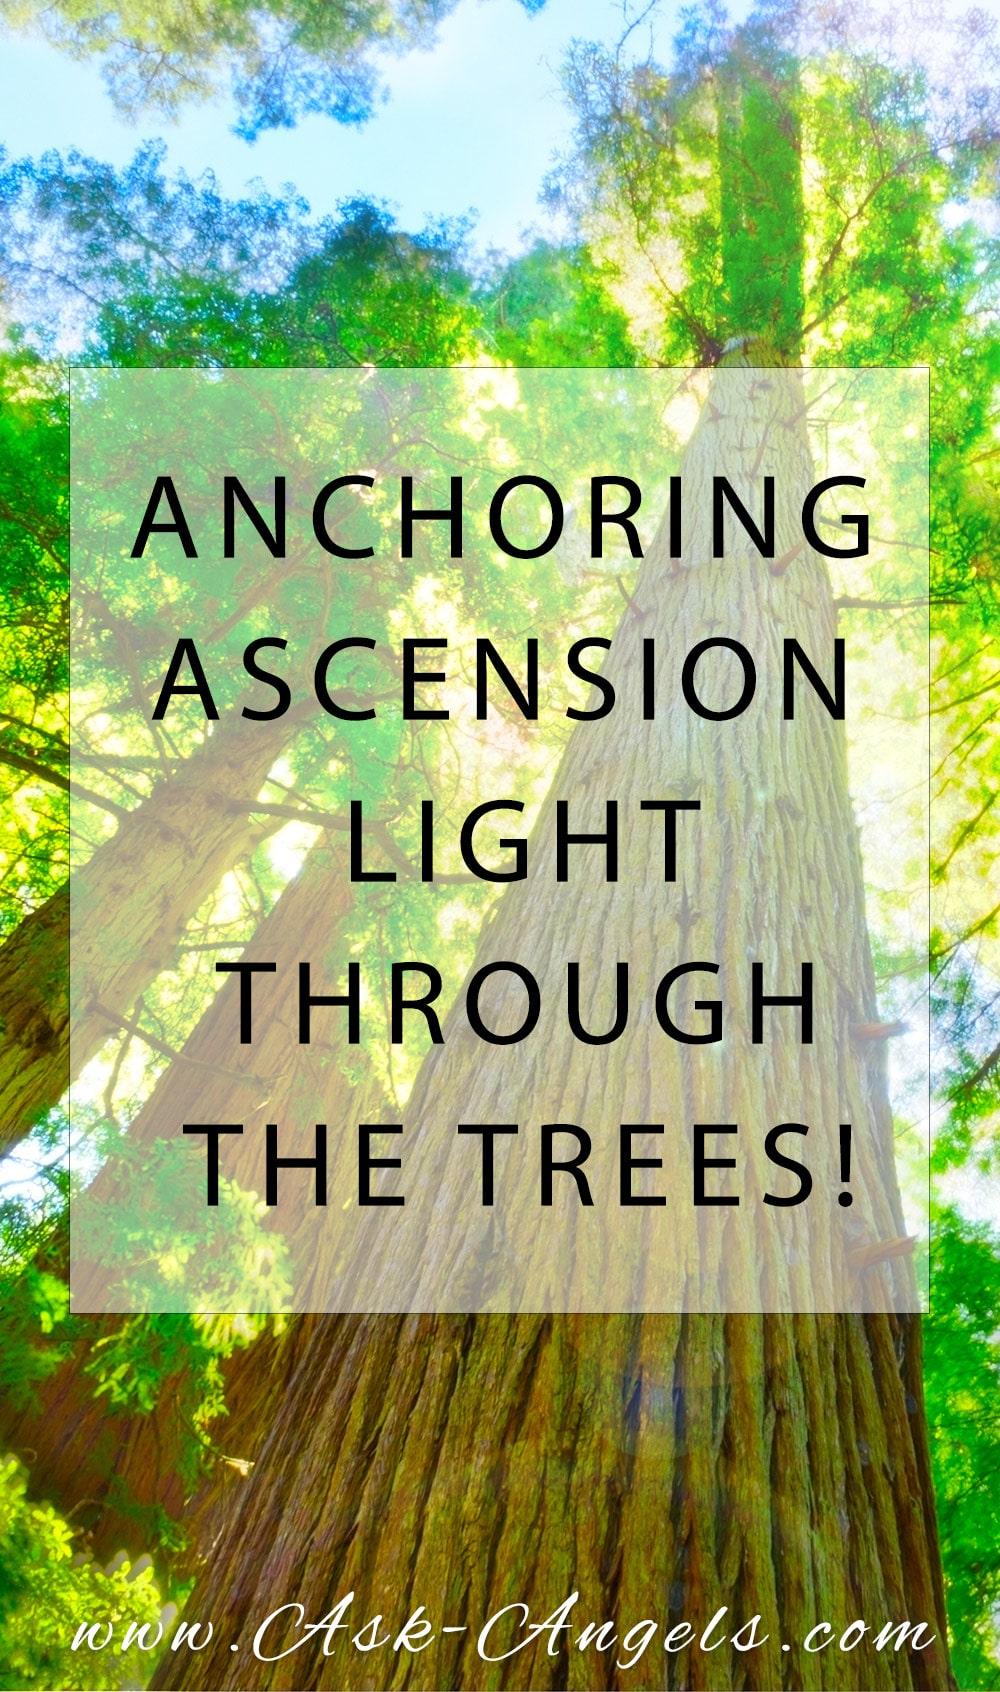 Anchoring Ascension Light Through The Trees